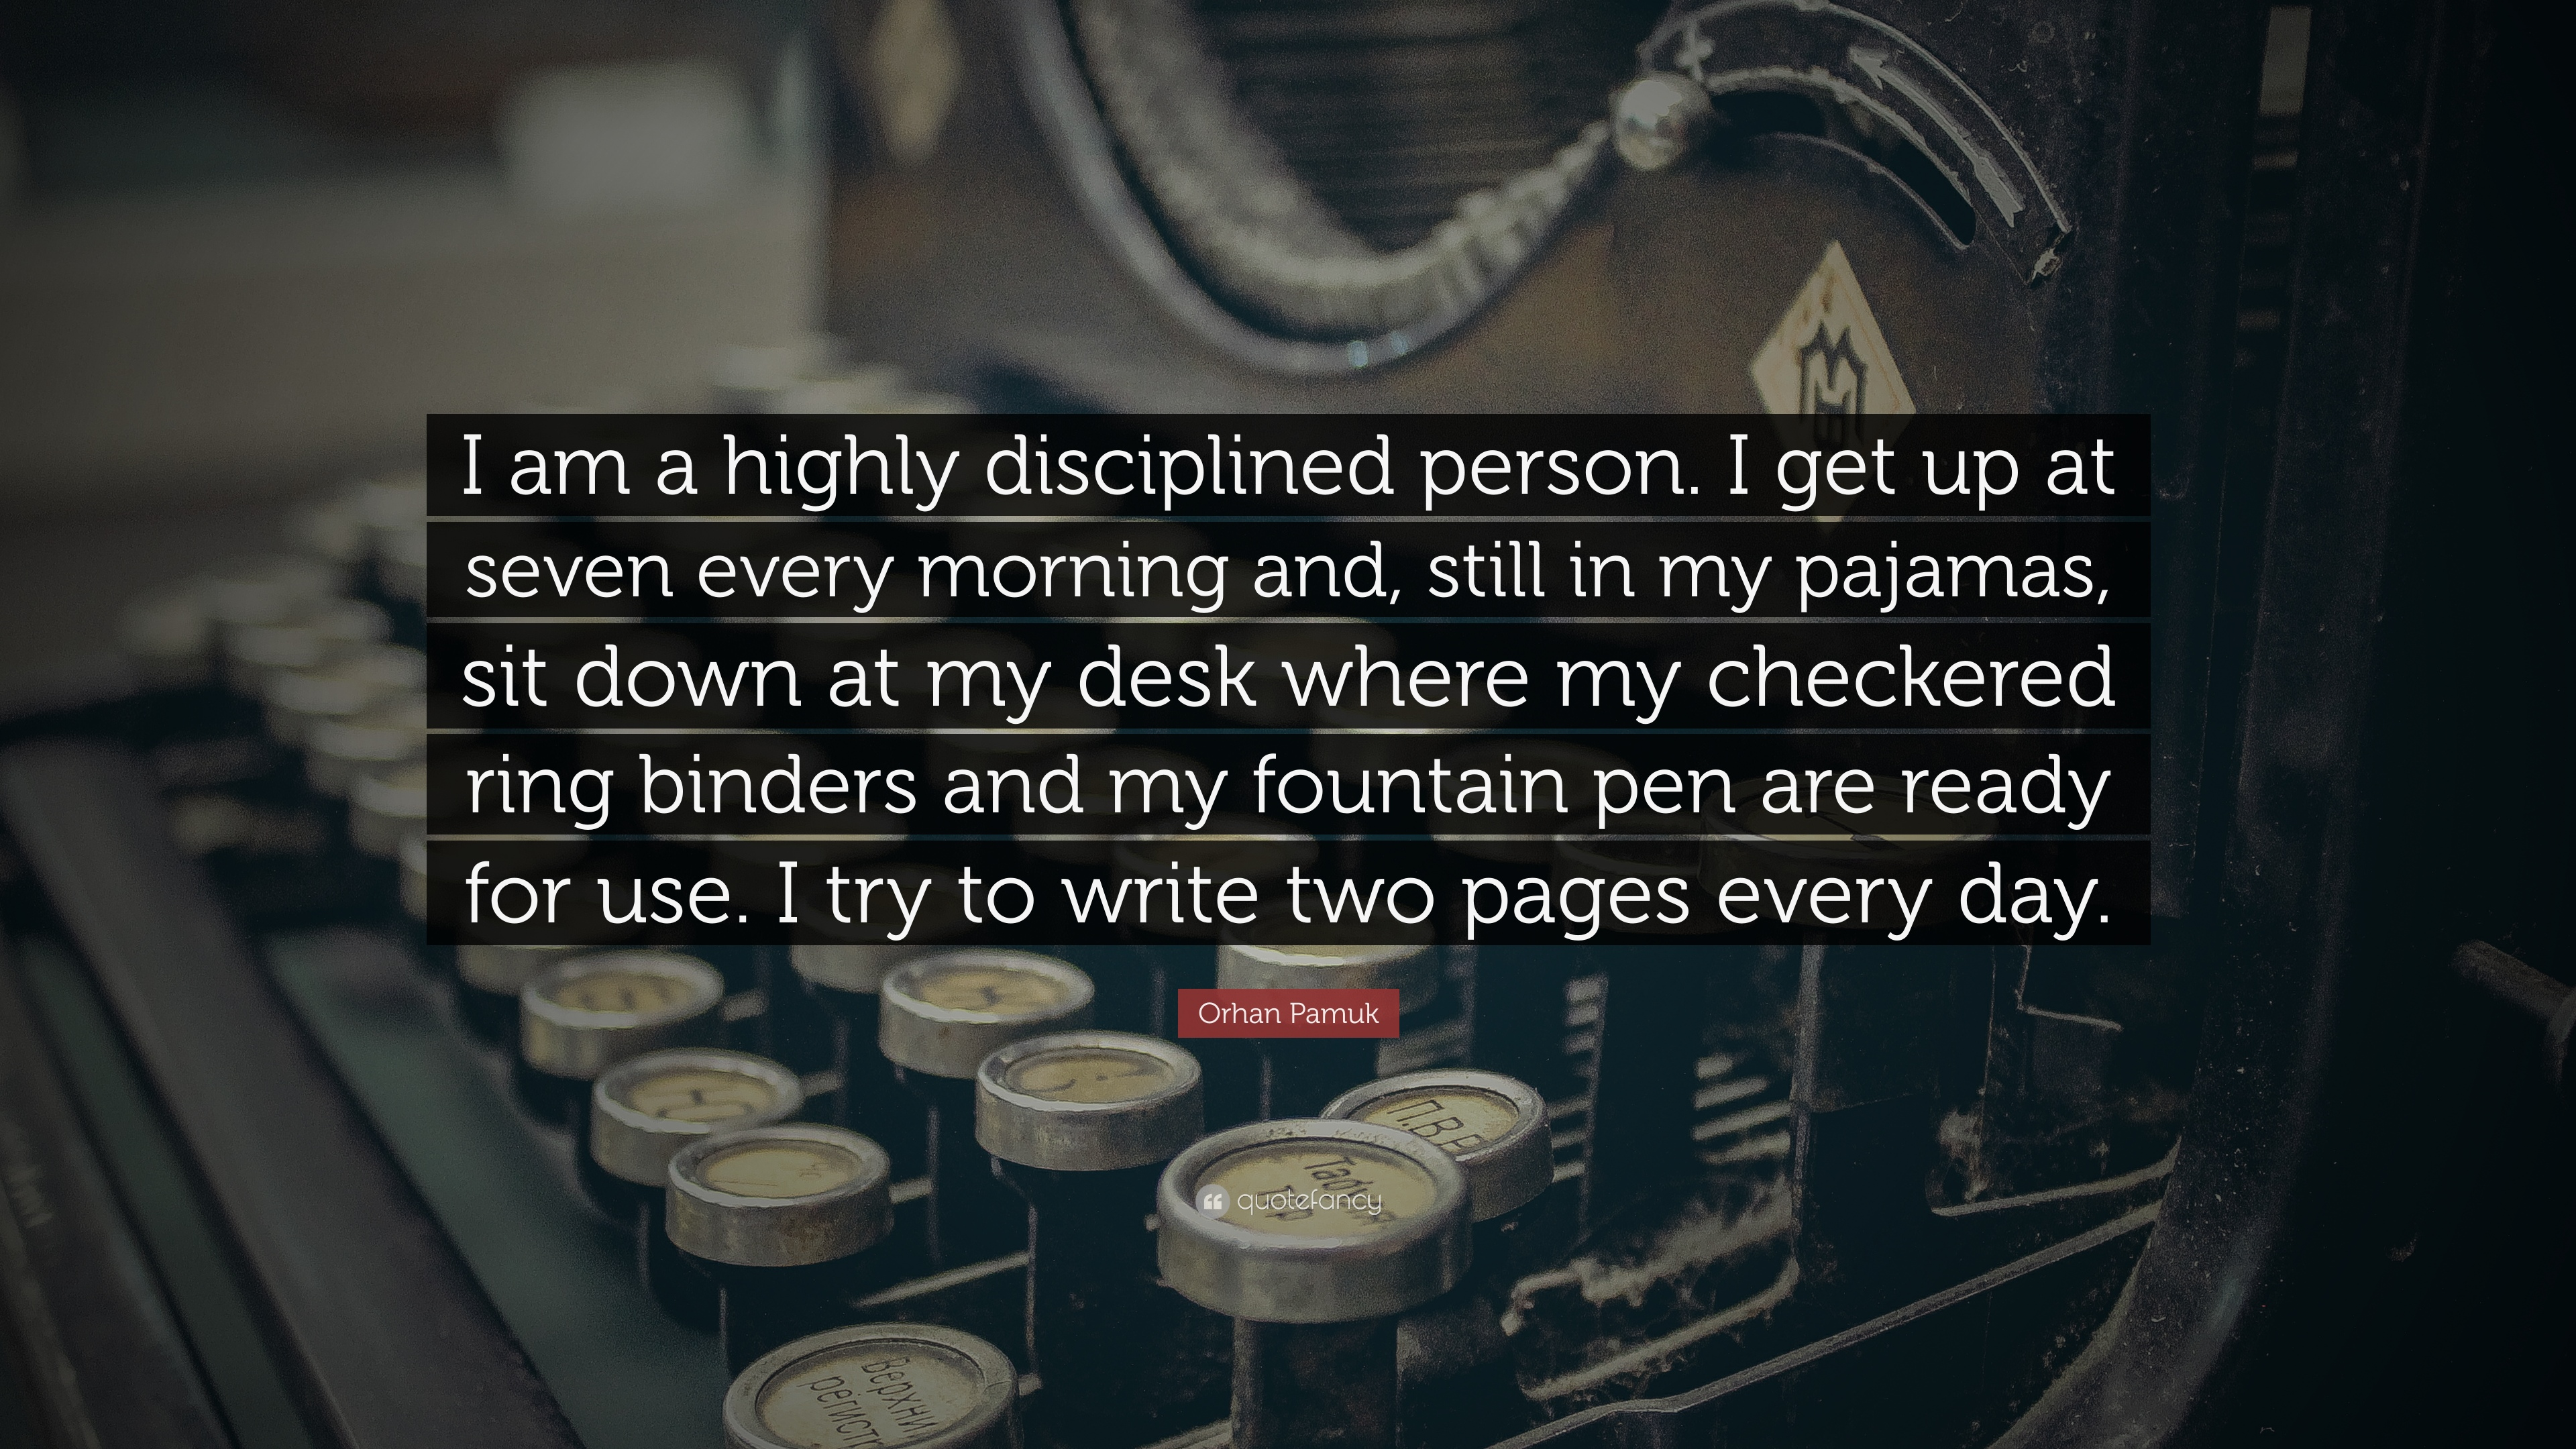 orhan pamuk quote i am a highly disciplined person i get up at seven every morning and still. Black Bedroom Furniture Sets. Home Design Ideas